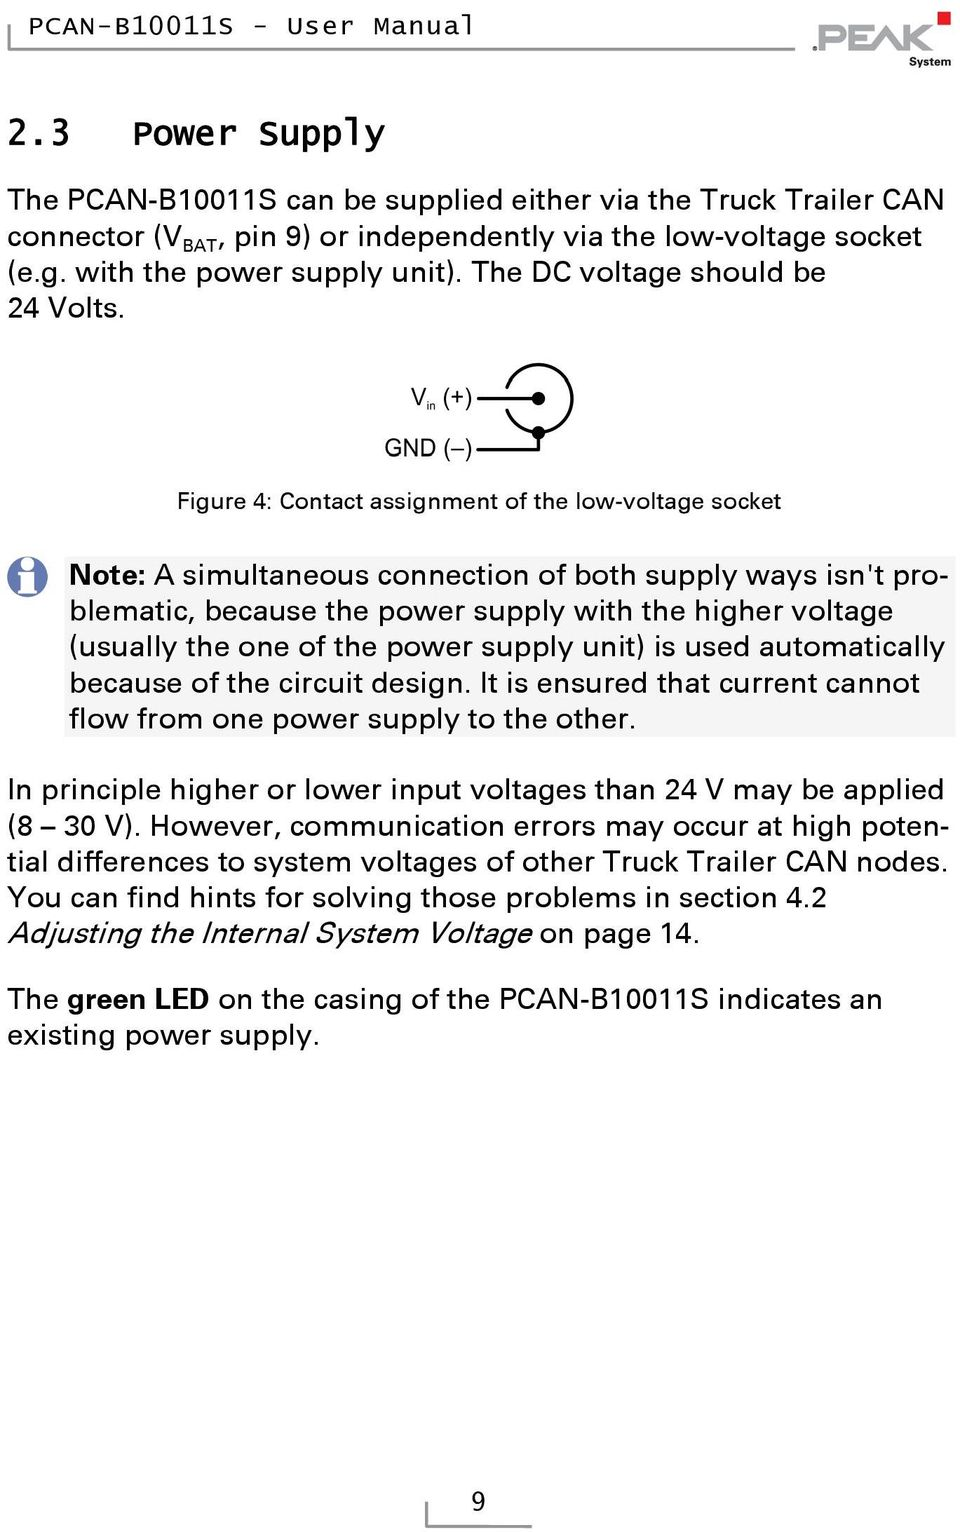 Figure 4: Contact assignment of the low-voltage socket Note: A simultaneous connection of both supply ways isn't problematic, because the power supply with the higher voltage (usually the one of the